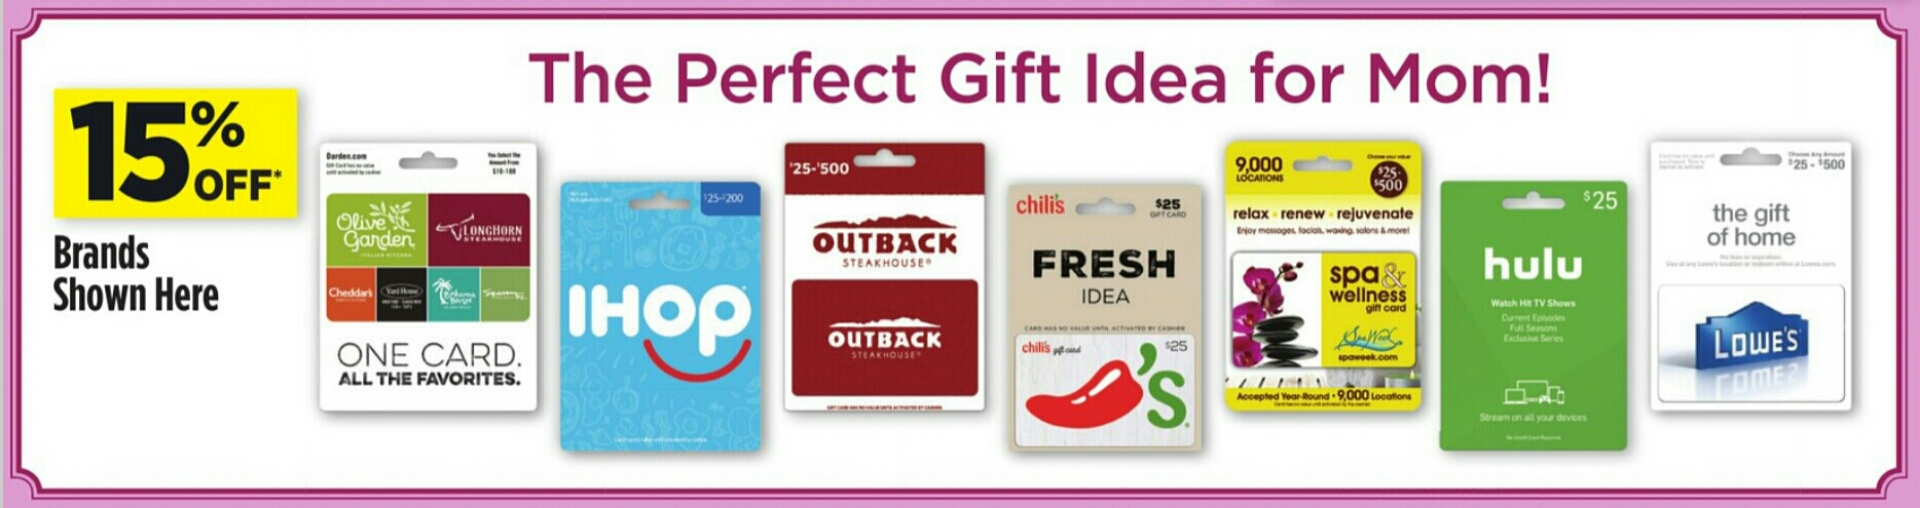 0 1525664807085 Screenshot 2018 05 06 23 34 22 1 Jpg. 15 Off Select Gift Cards Lowe S Olive Garden Ihop Outback Etc